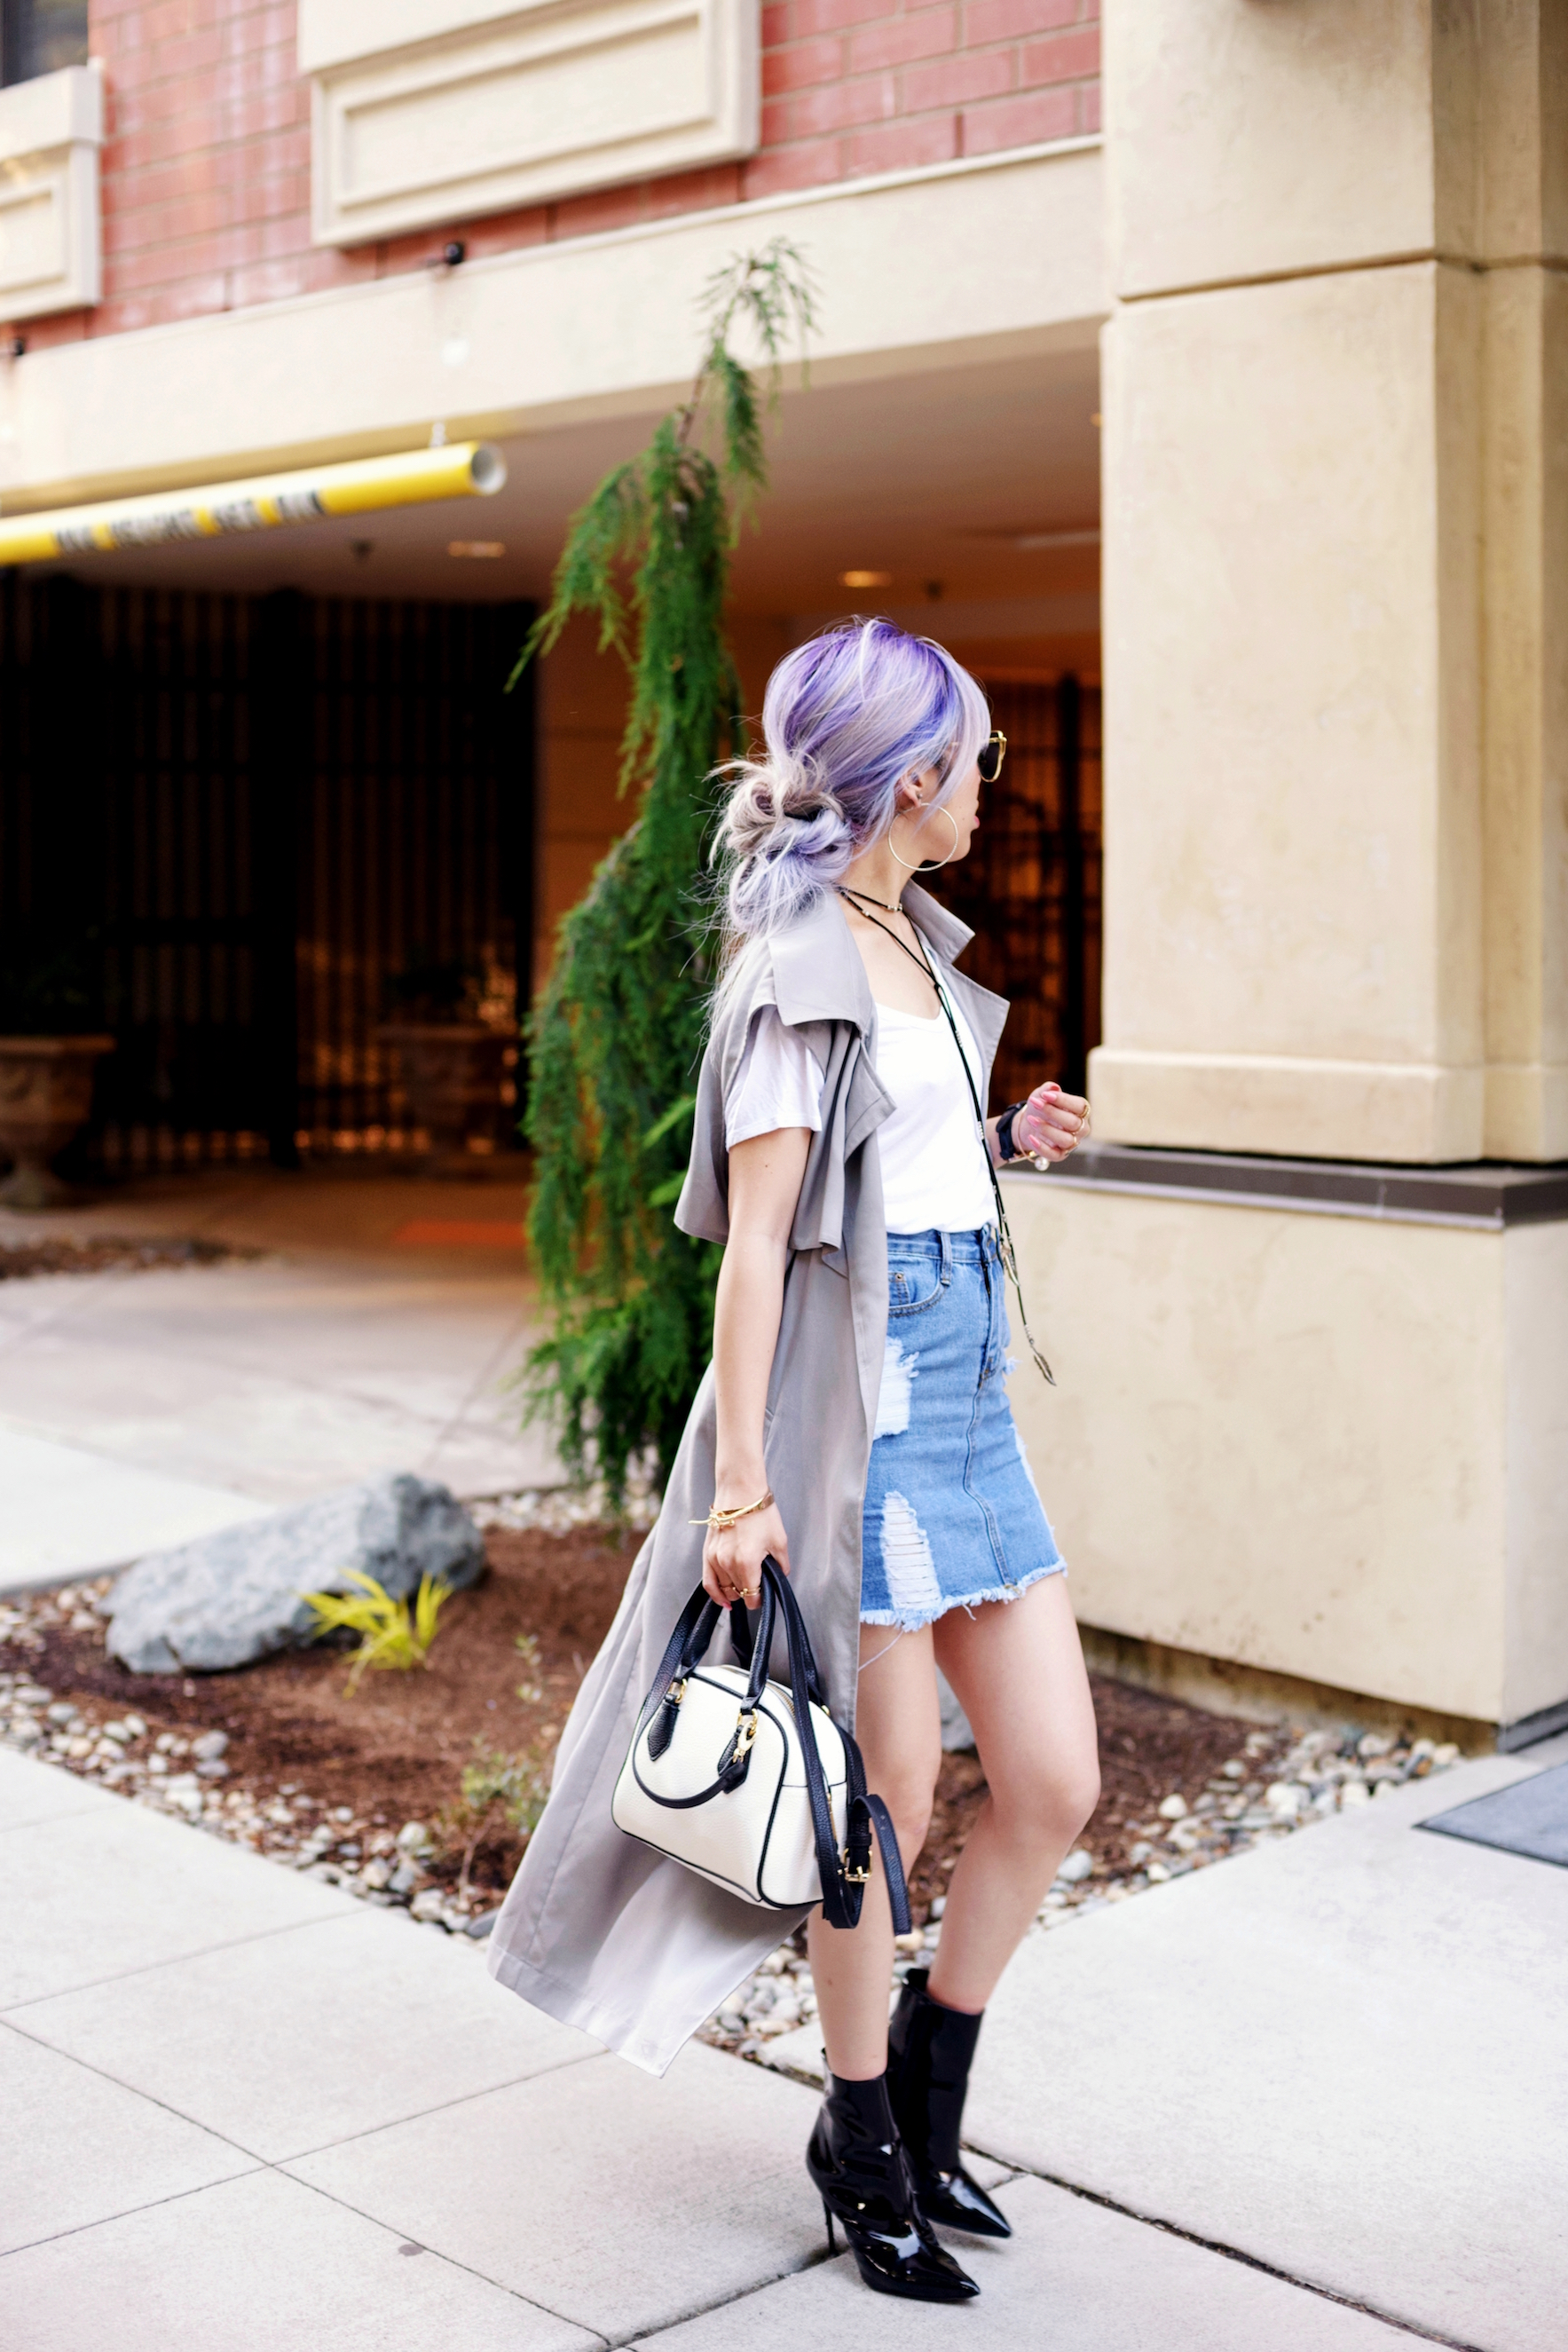 Dezzal Grey Trench Coat_TOPSHOP White T-shirt_She Inside Highwaisted Denim Mini Skit_ALDO Patent Boots_ZARA Mini Bag_Suede Choker_Daniel Wellington Watch_Aikas Love Cloeset_Seattle Fashion Blogger from Japan_Lavender Hair_Messy low bun Hair 8